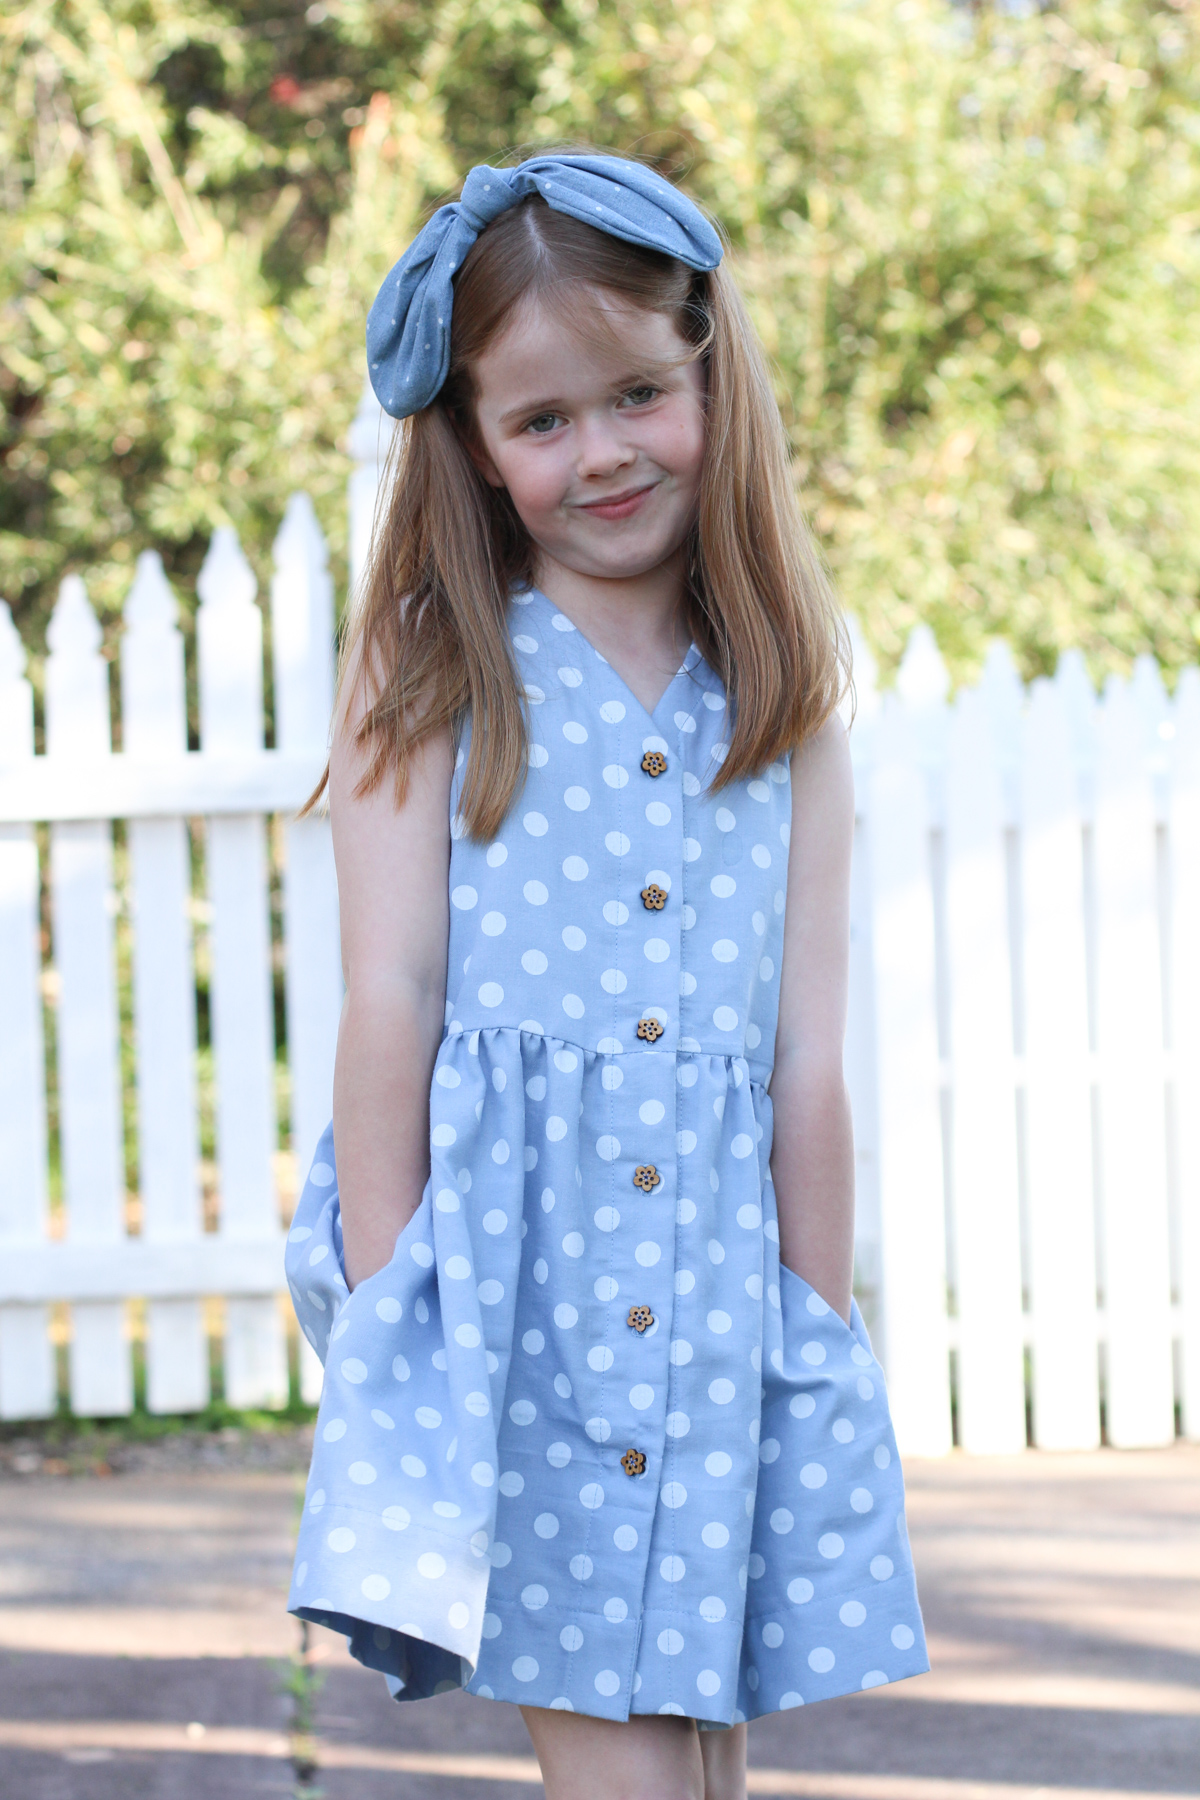 Polka dot Mini Darling Ranges dress - View C sleeveless with pockets